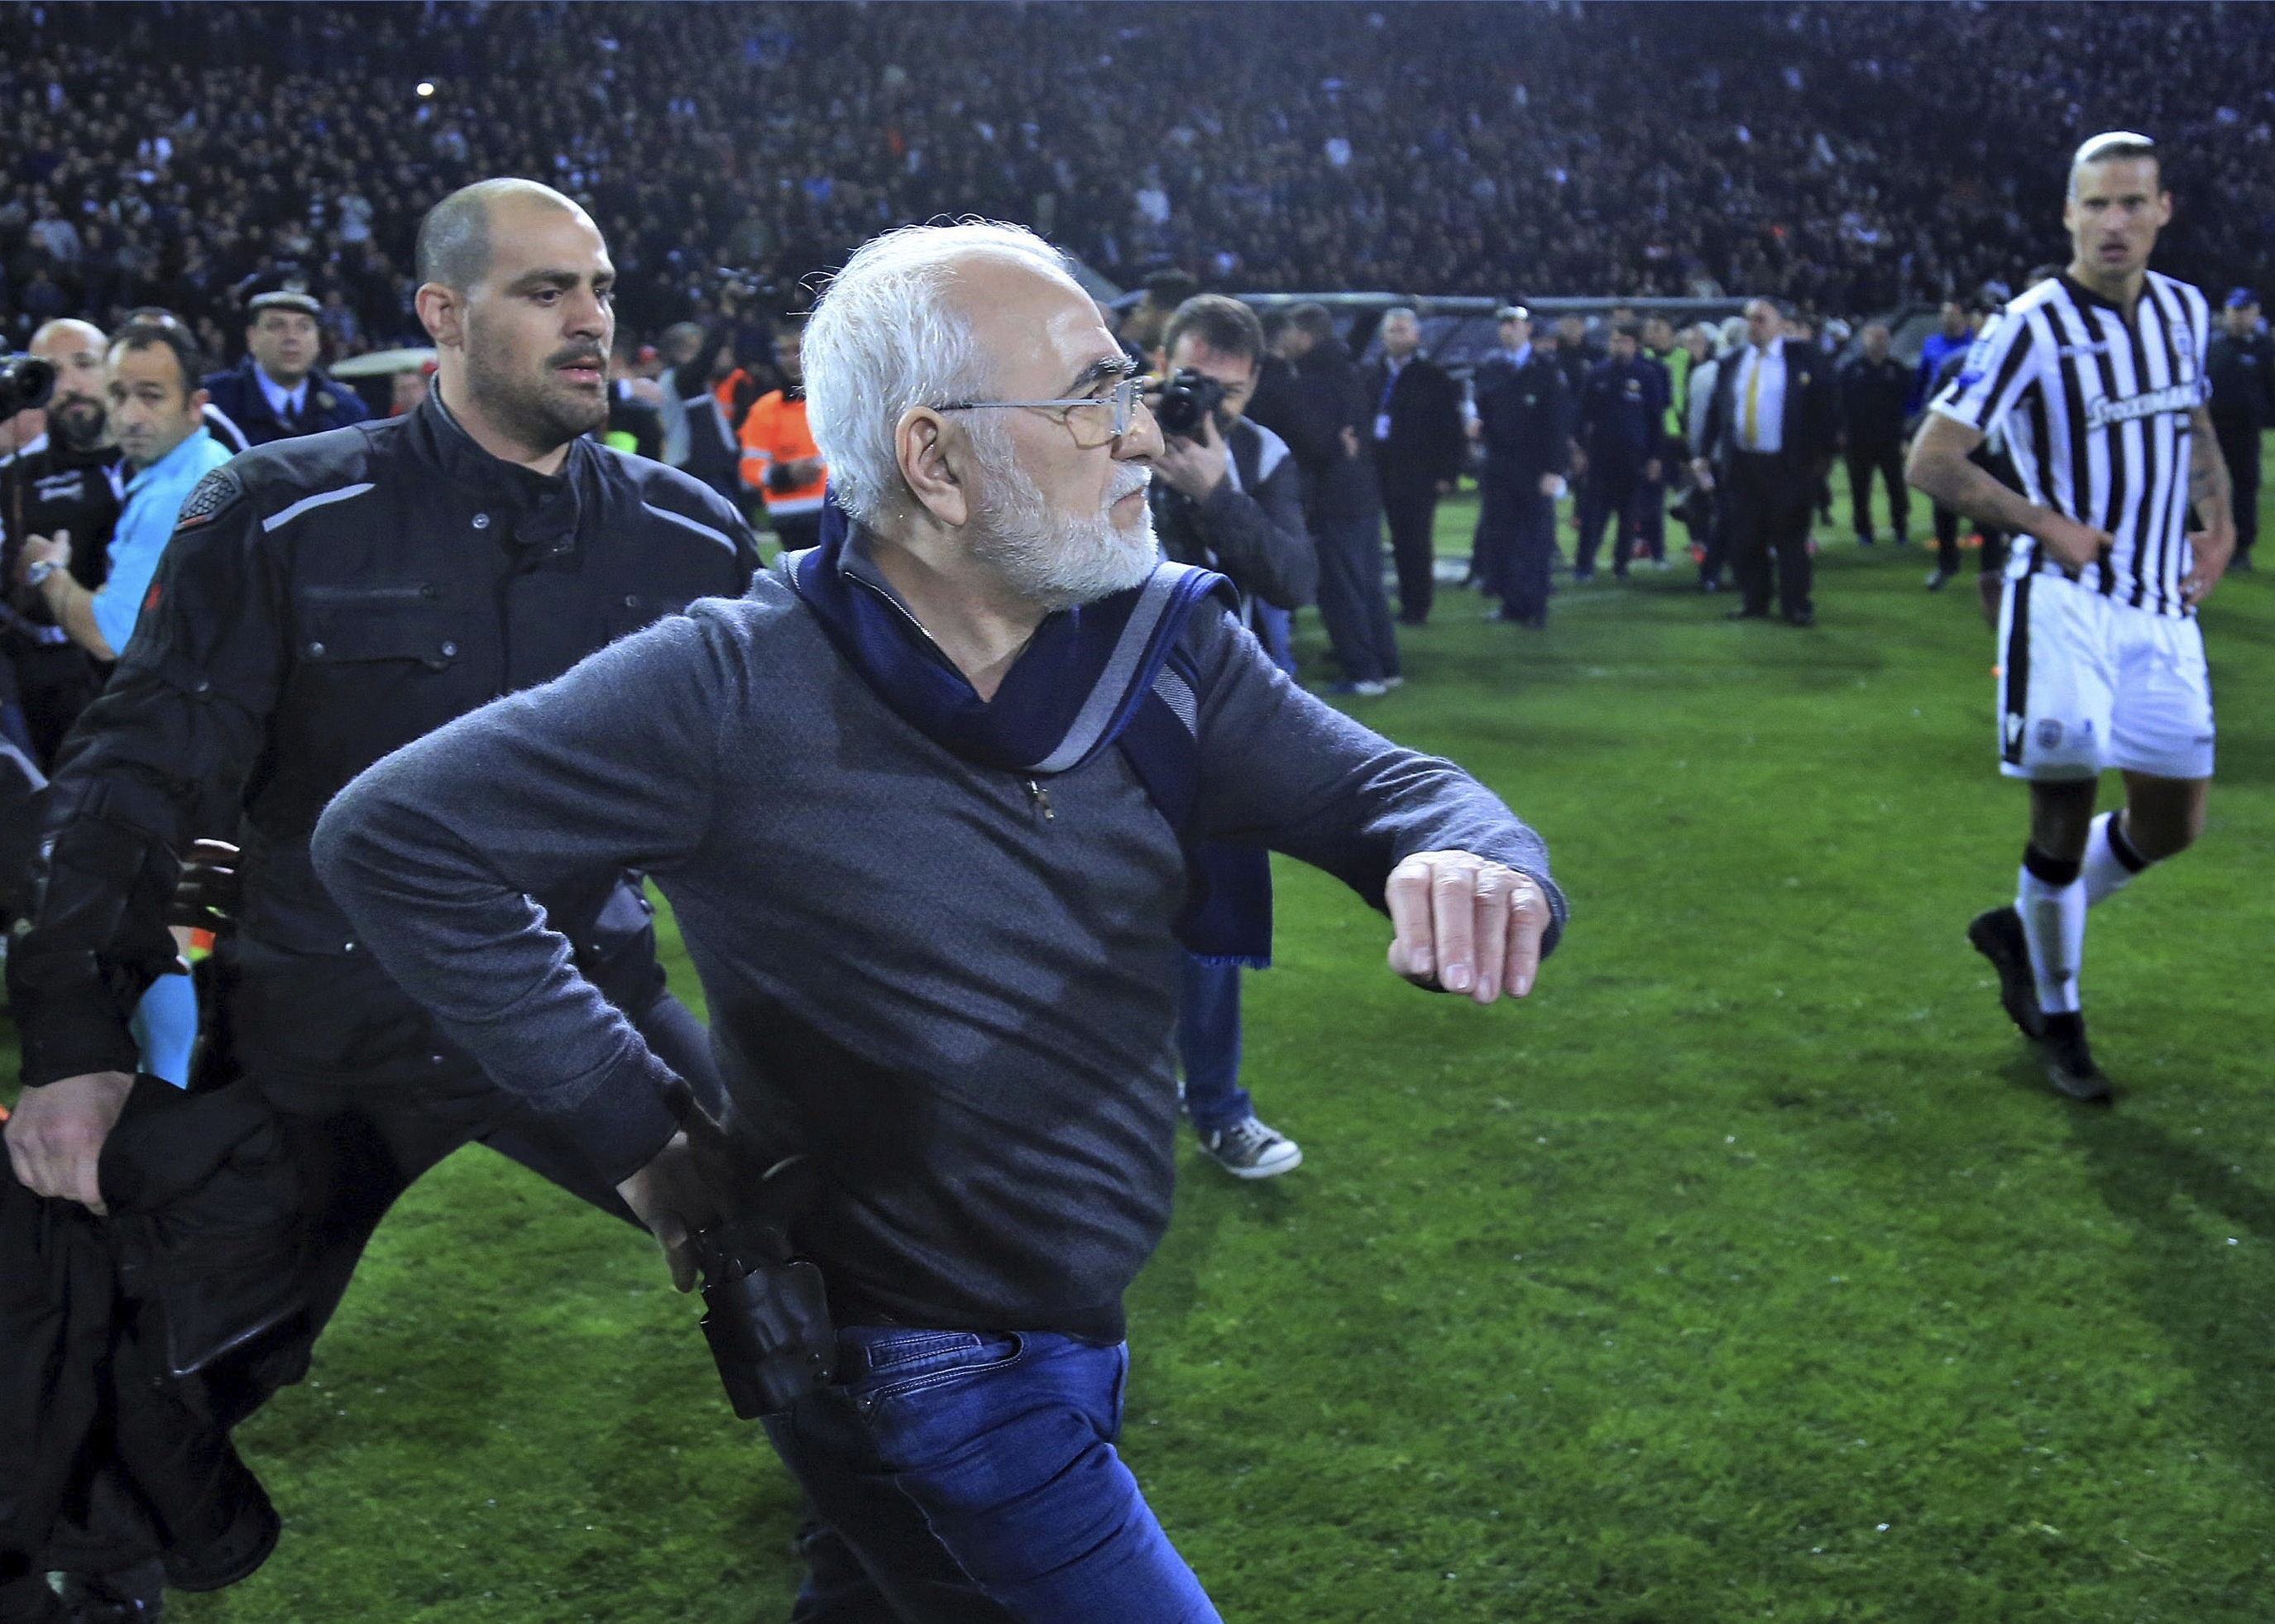 Greece imports referees as fix for soccer violence